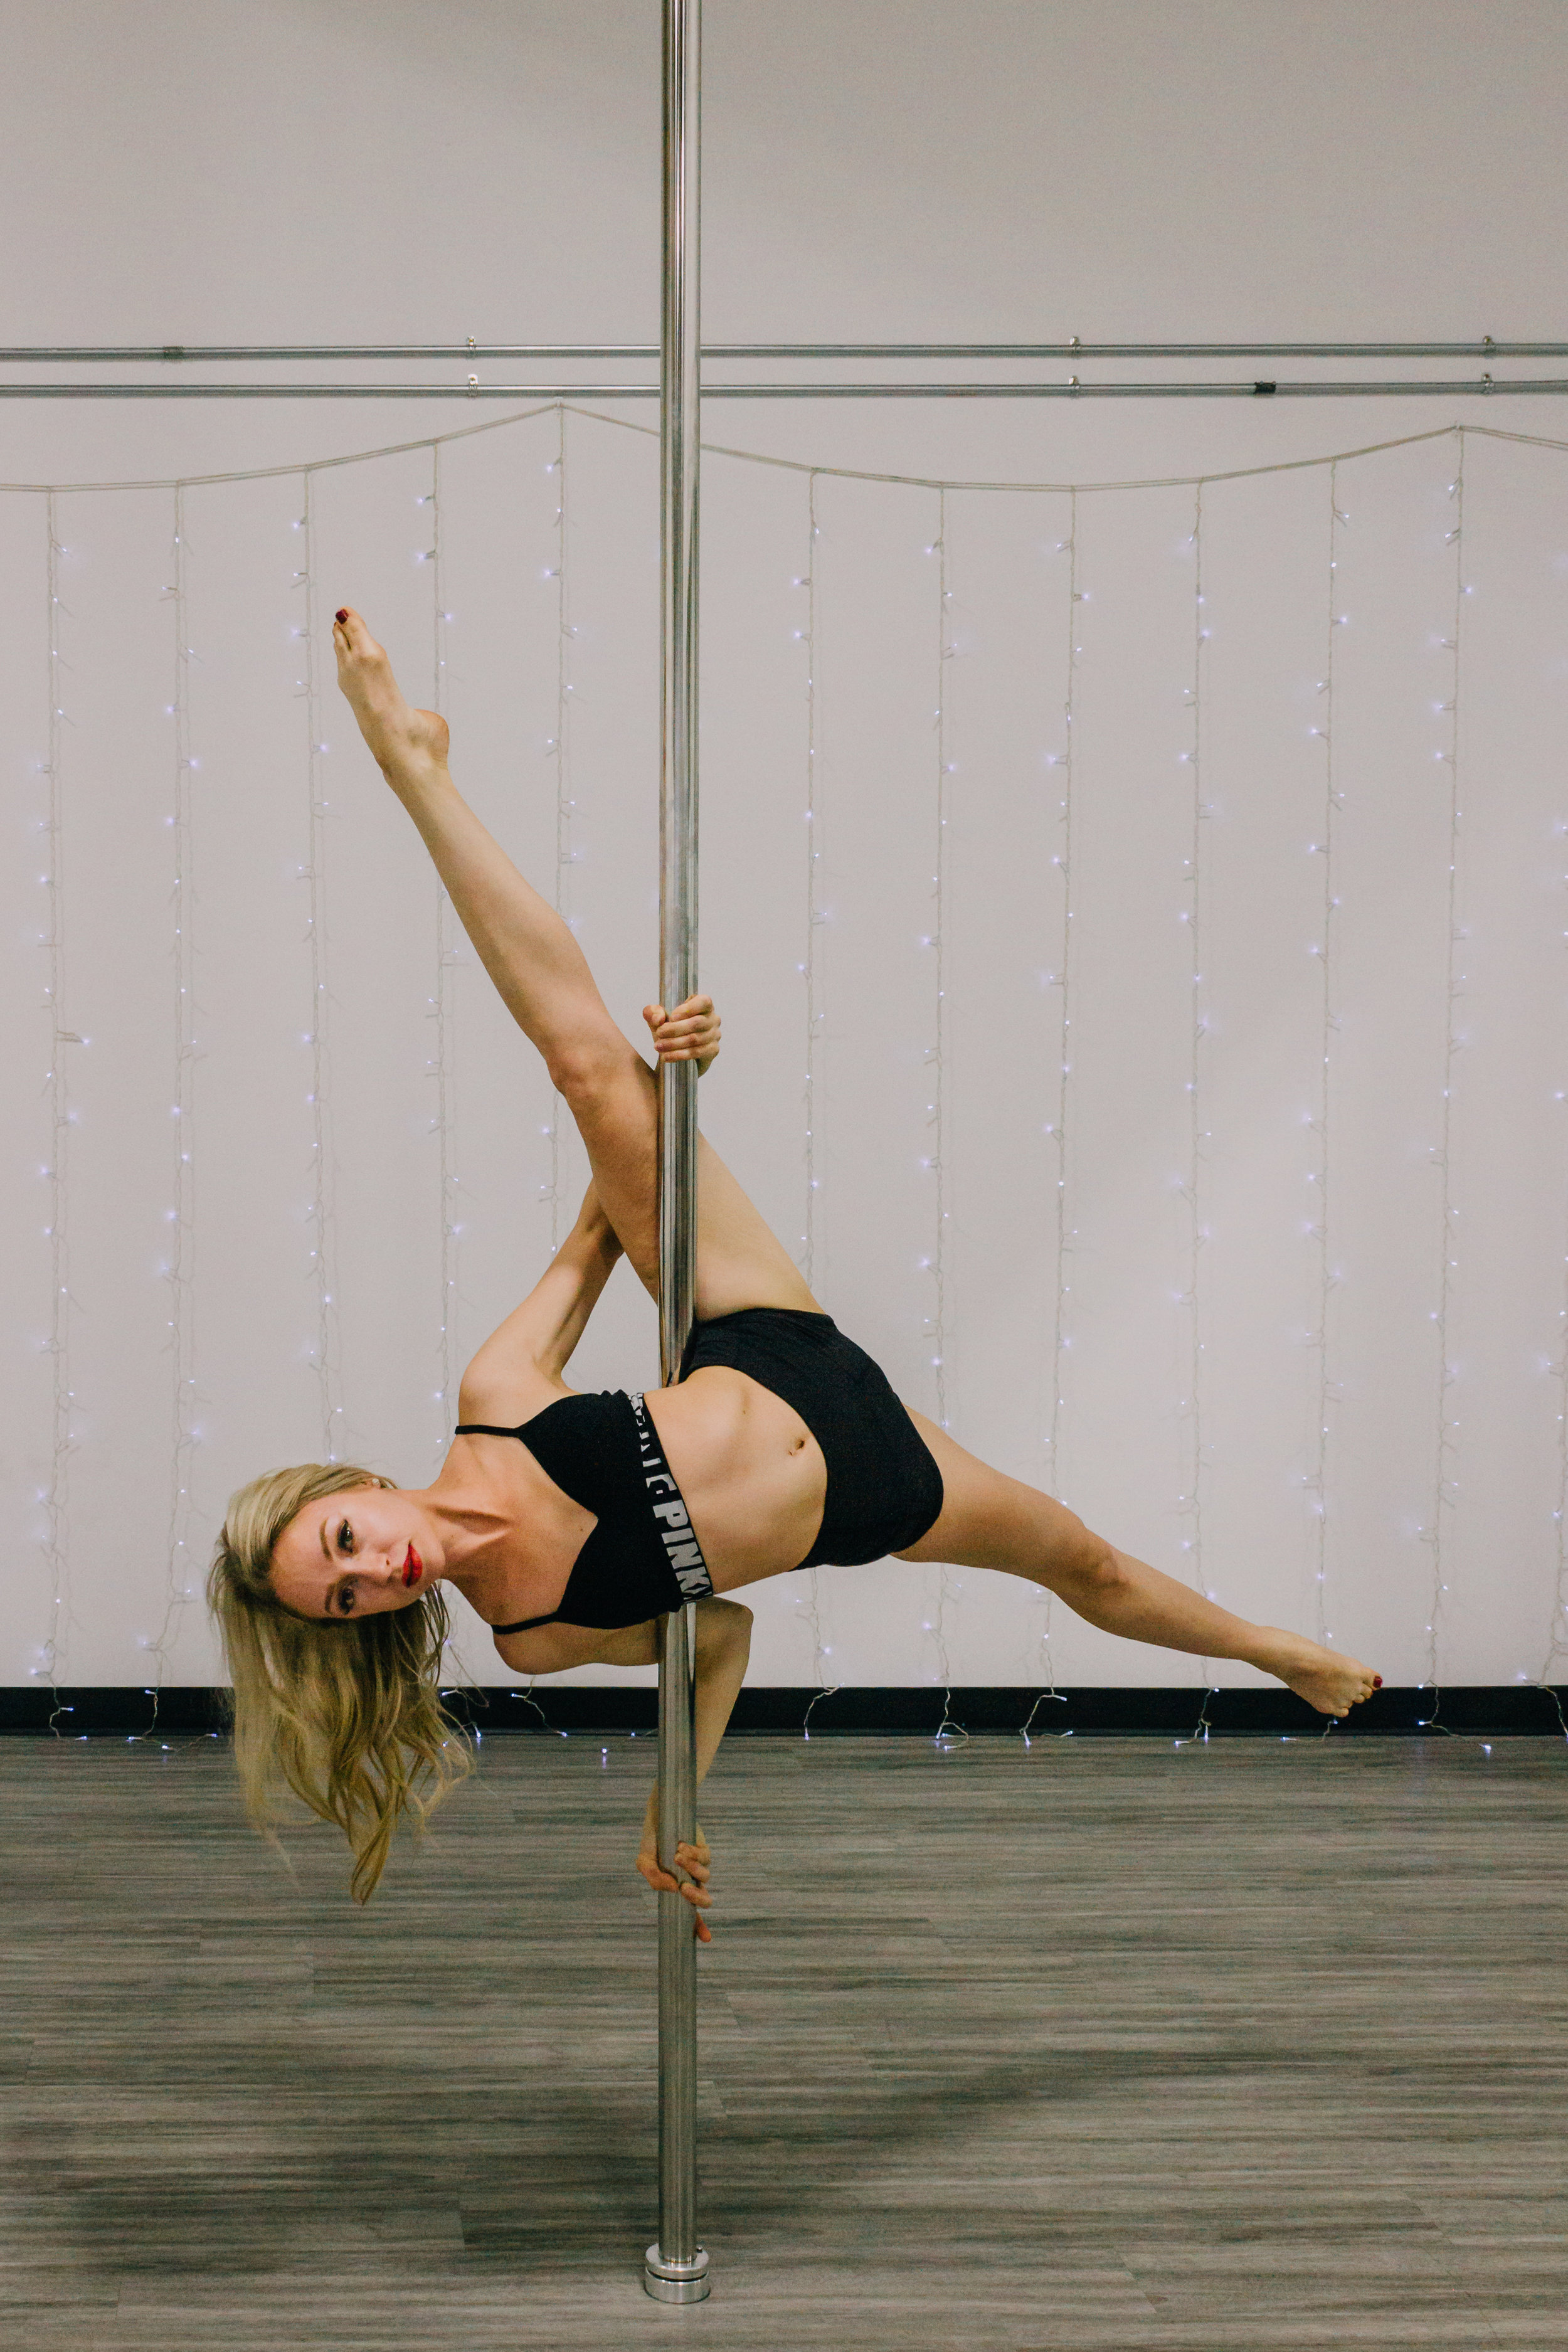 PRE-ADVANCE FUNDAMENTALS OF POLE - PRE-ADVANCE 1The Pre-Advance term is for the student wanting to explore the higher skill set of tricks, techniques & transitions. Within this term, you will be introduced to aerial inverts, climbs, and shoulder mounts.Mandatory Requirements: Strong Chopper & an unassisted leg hang variationNext Step: Pre-Advance 2.PRE-ADVANCE 2Pre-Advance 2 is a continuation of advanced pole. These moves require greater strength & flexibility. Participants must be confident with executing all pre-advanced skills.Mandatory Requirement: Front to back splits, Strong Shoulder MountNext Step: Advanced Pole